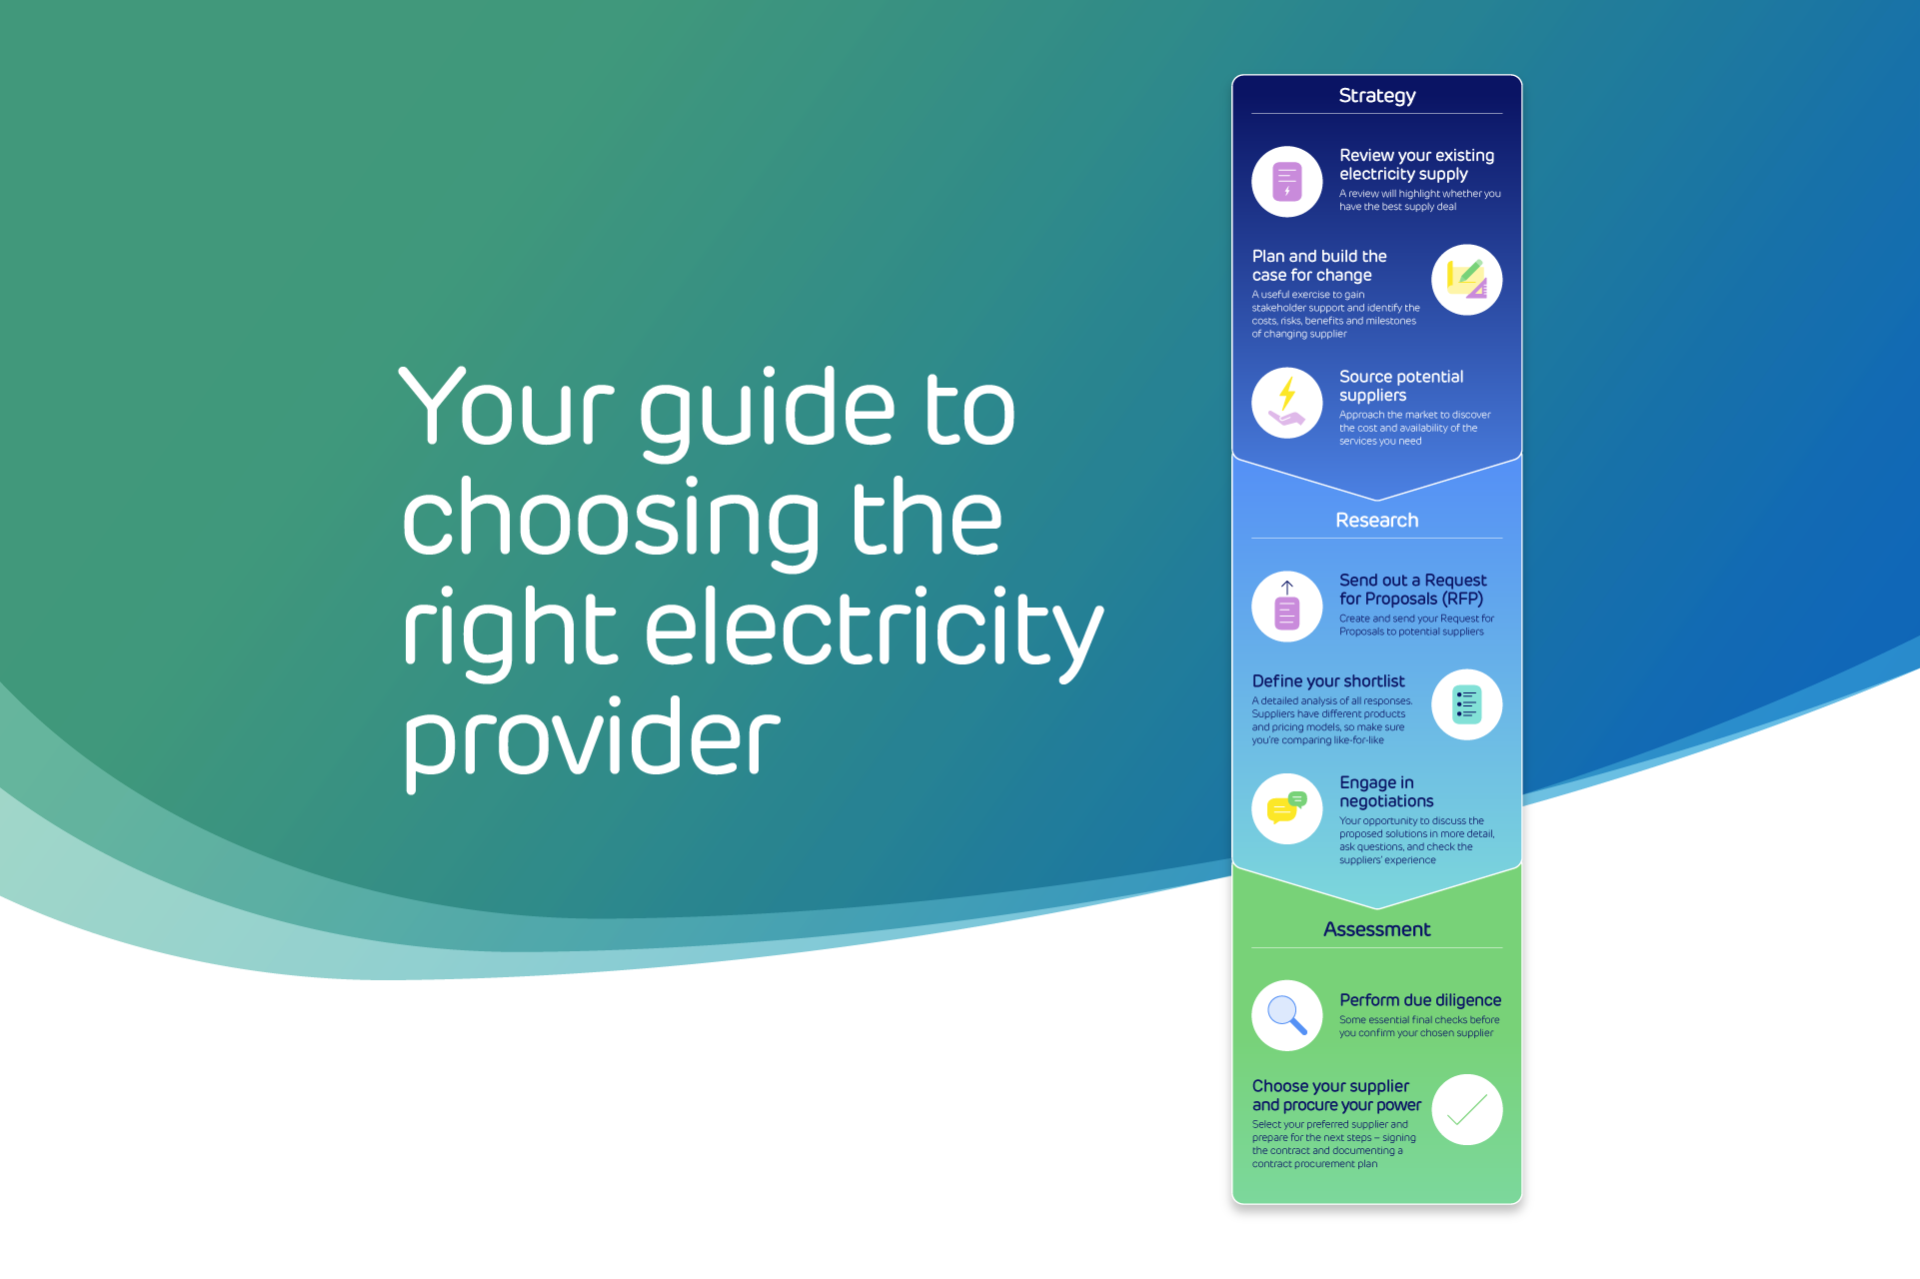 Your guide to choosing the right electricity provider - blog page